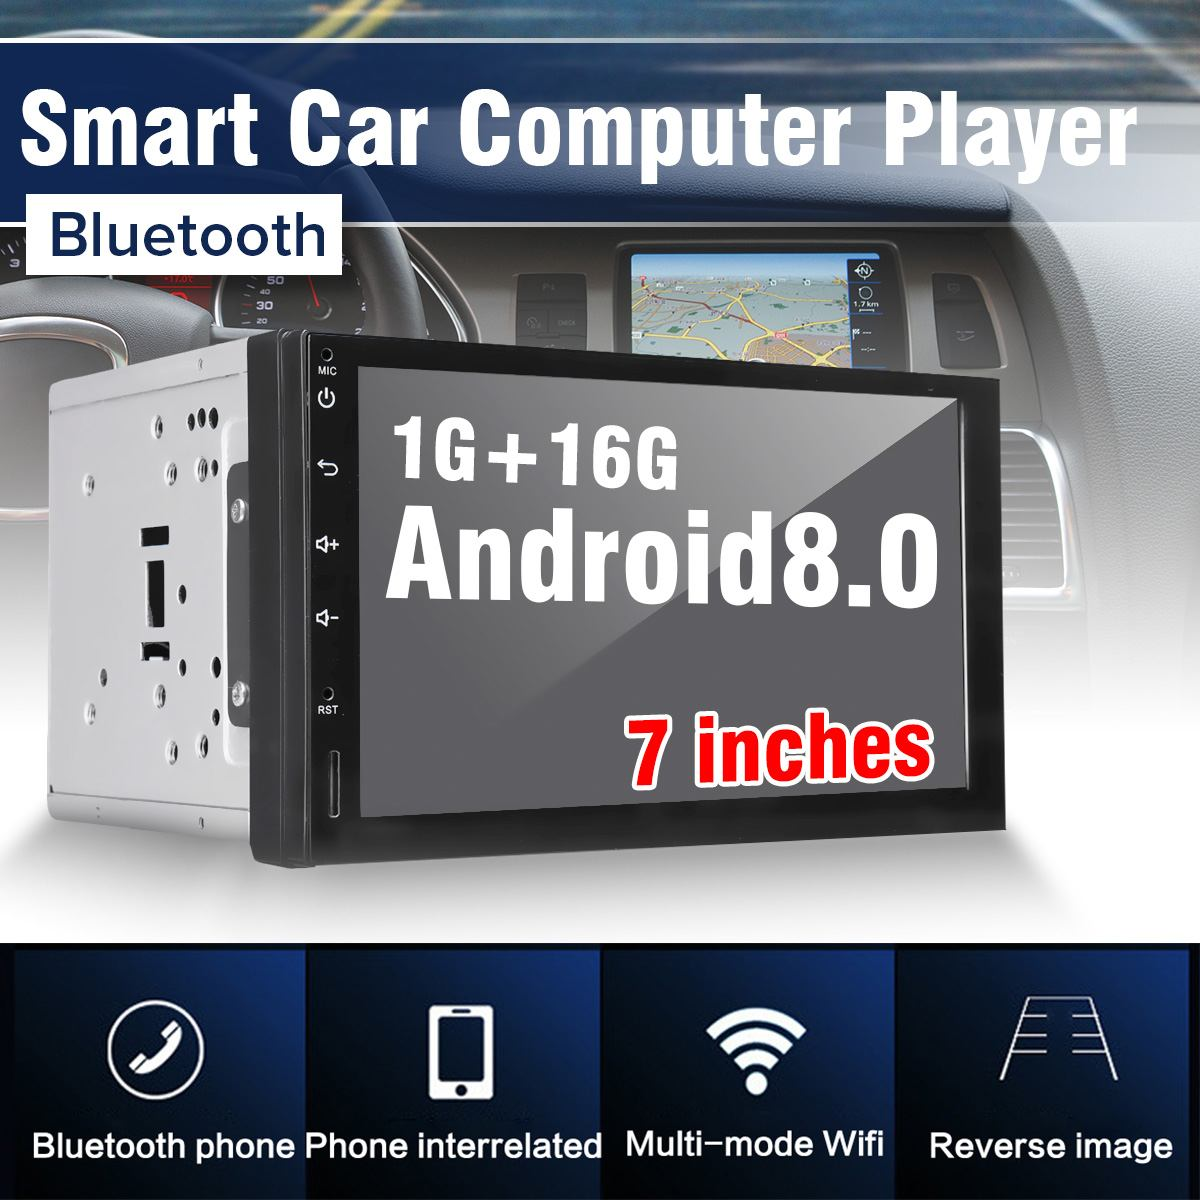 Audew 7 Android 8.0 Car Radio Stereo GPS di Navigazione bluetooth USB SD Lettore 2 Din Touchs Car Audio Autoradio multimedia PlayerAudew 7 Android 8.0 Car Radio Stereo GPS di Navigazione bluetooth USB SD Lettore 2 Din Touchs Car Audio Autoradio multimedia Player